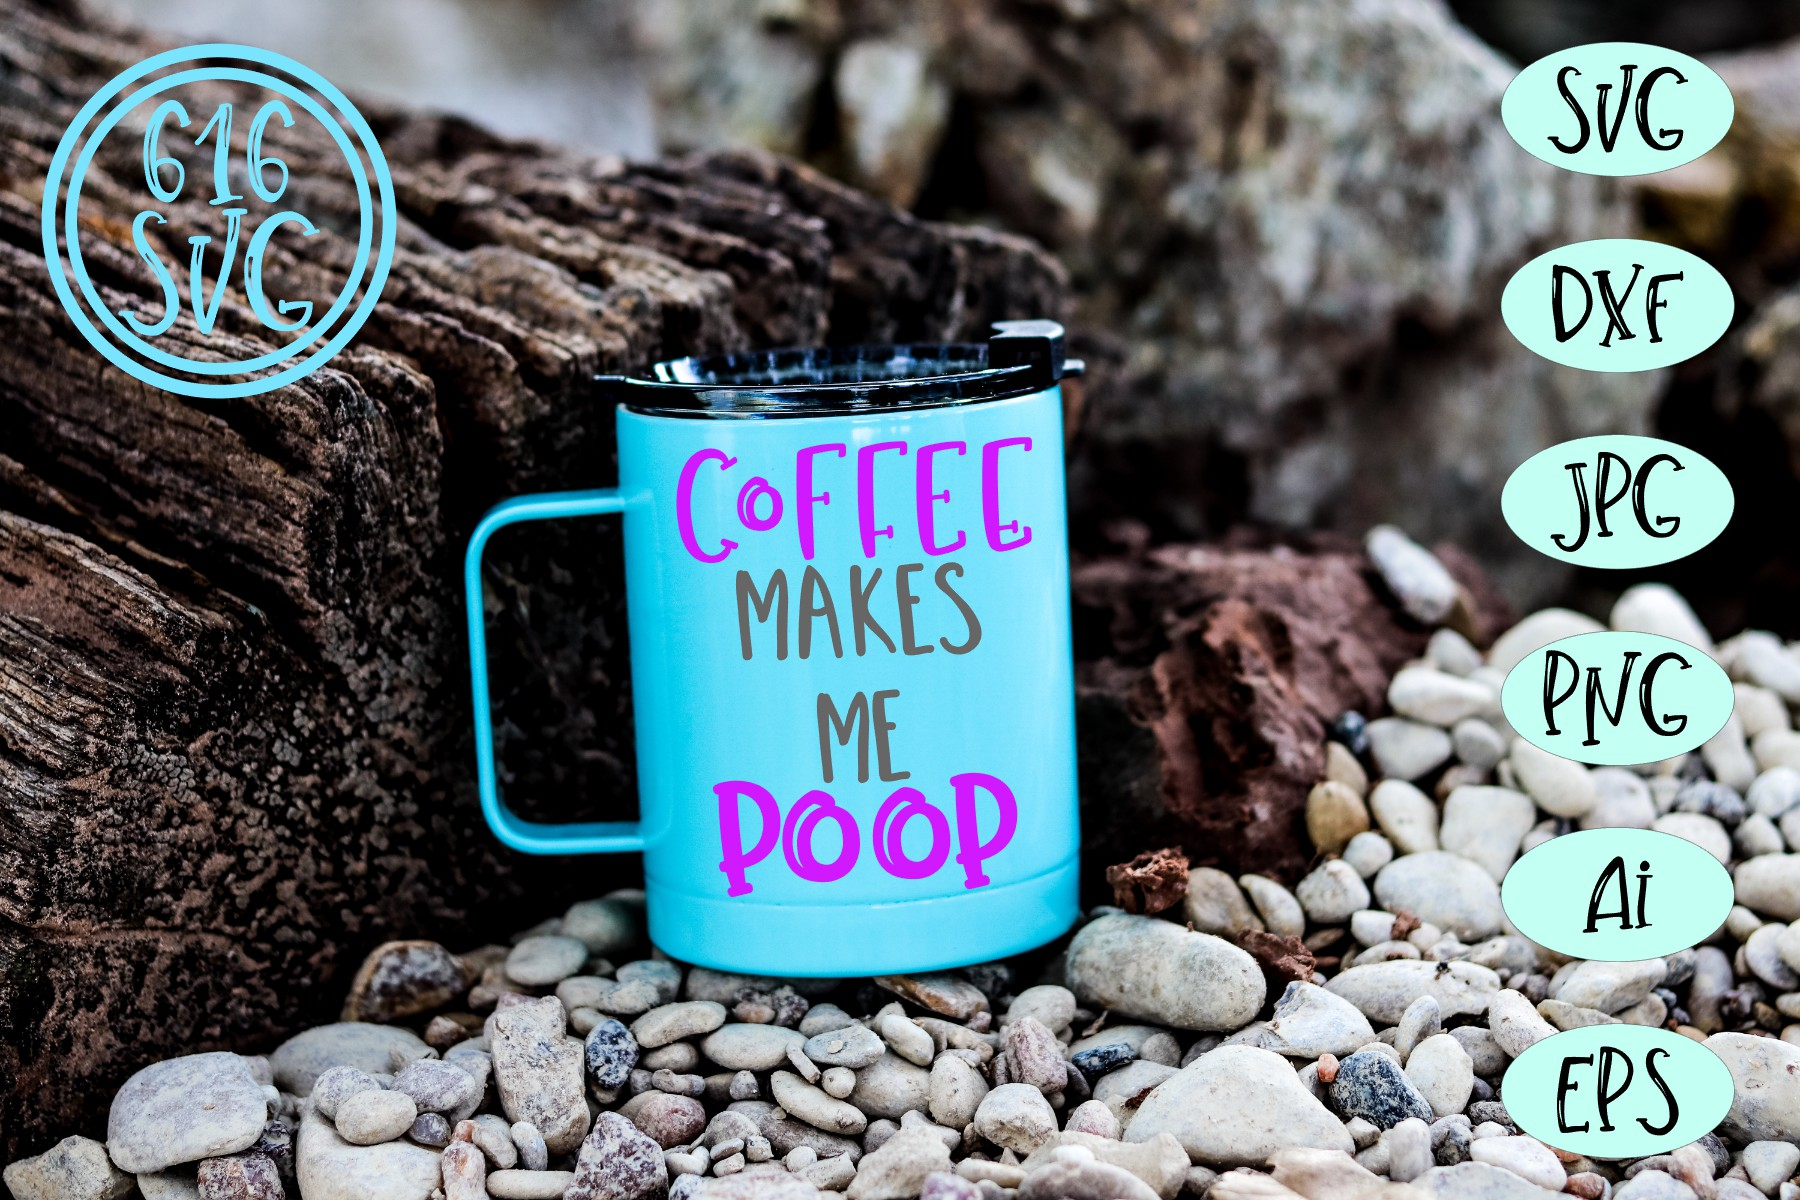 Coffee makes me poop SVG, DXF, Ai, PNG example image 1